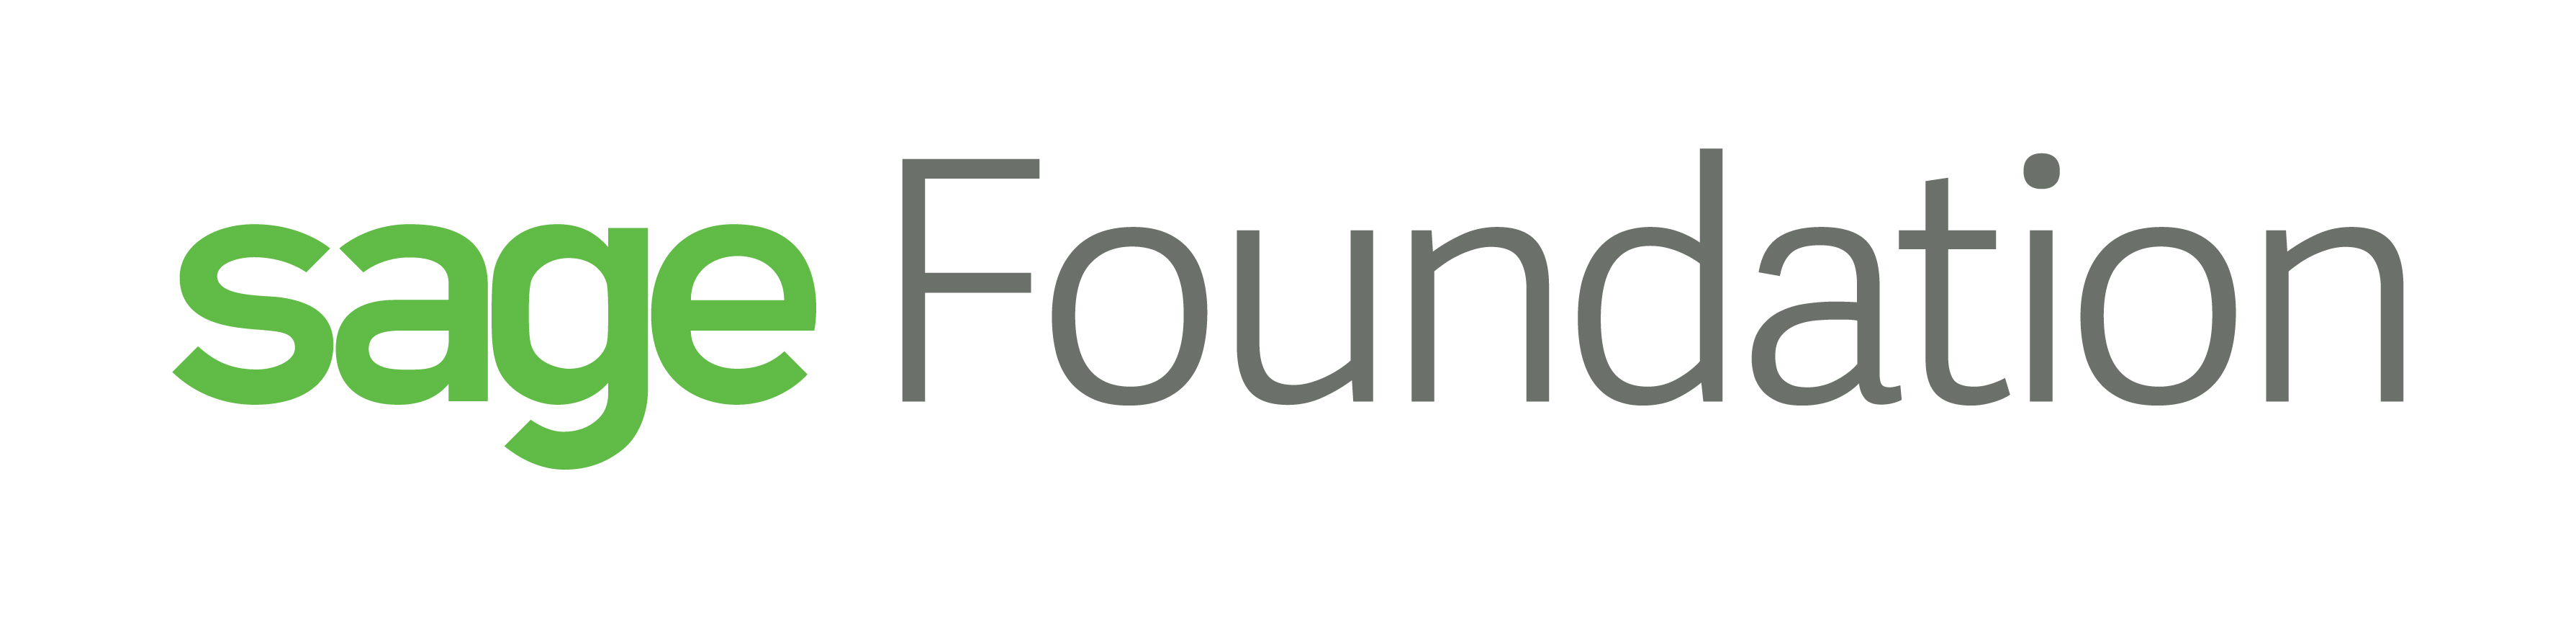 Sage_Foundation_logo